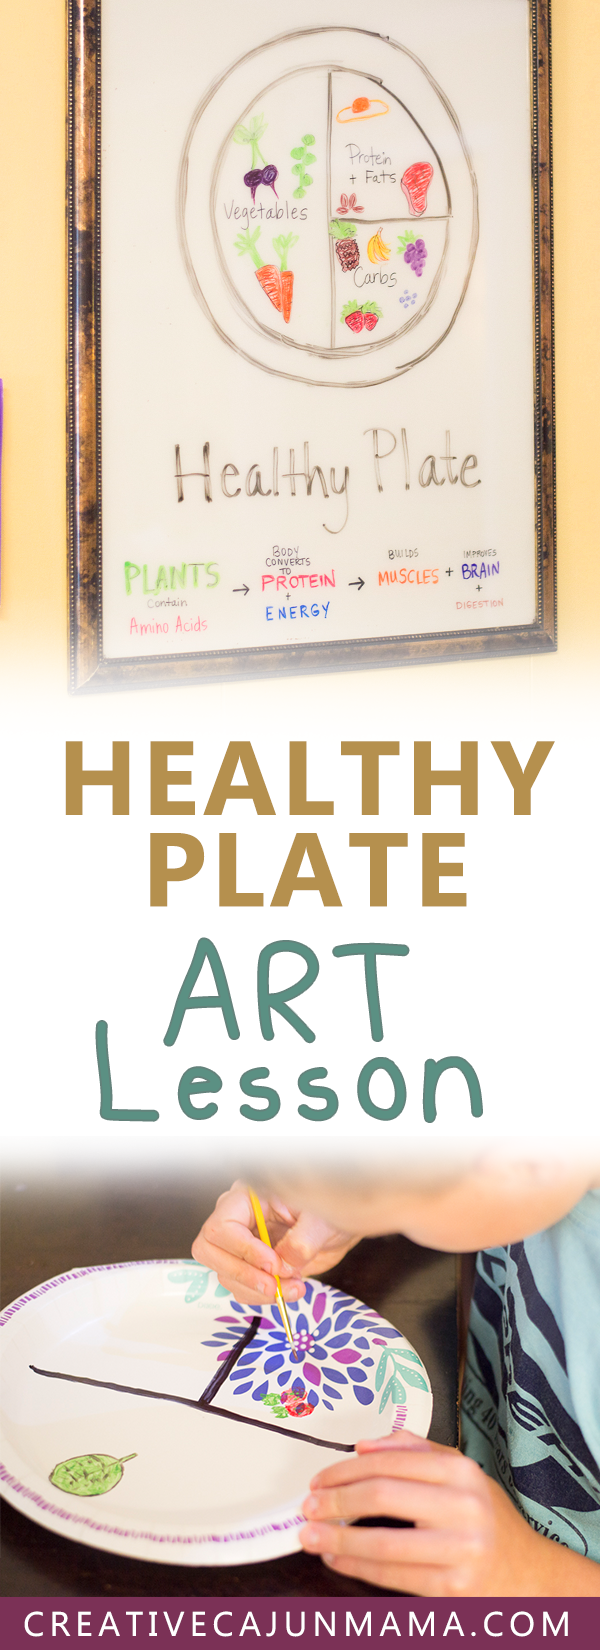 Healthy Plate Art Lesson | Hands-on Learning about Nutrition